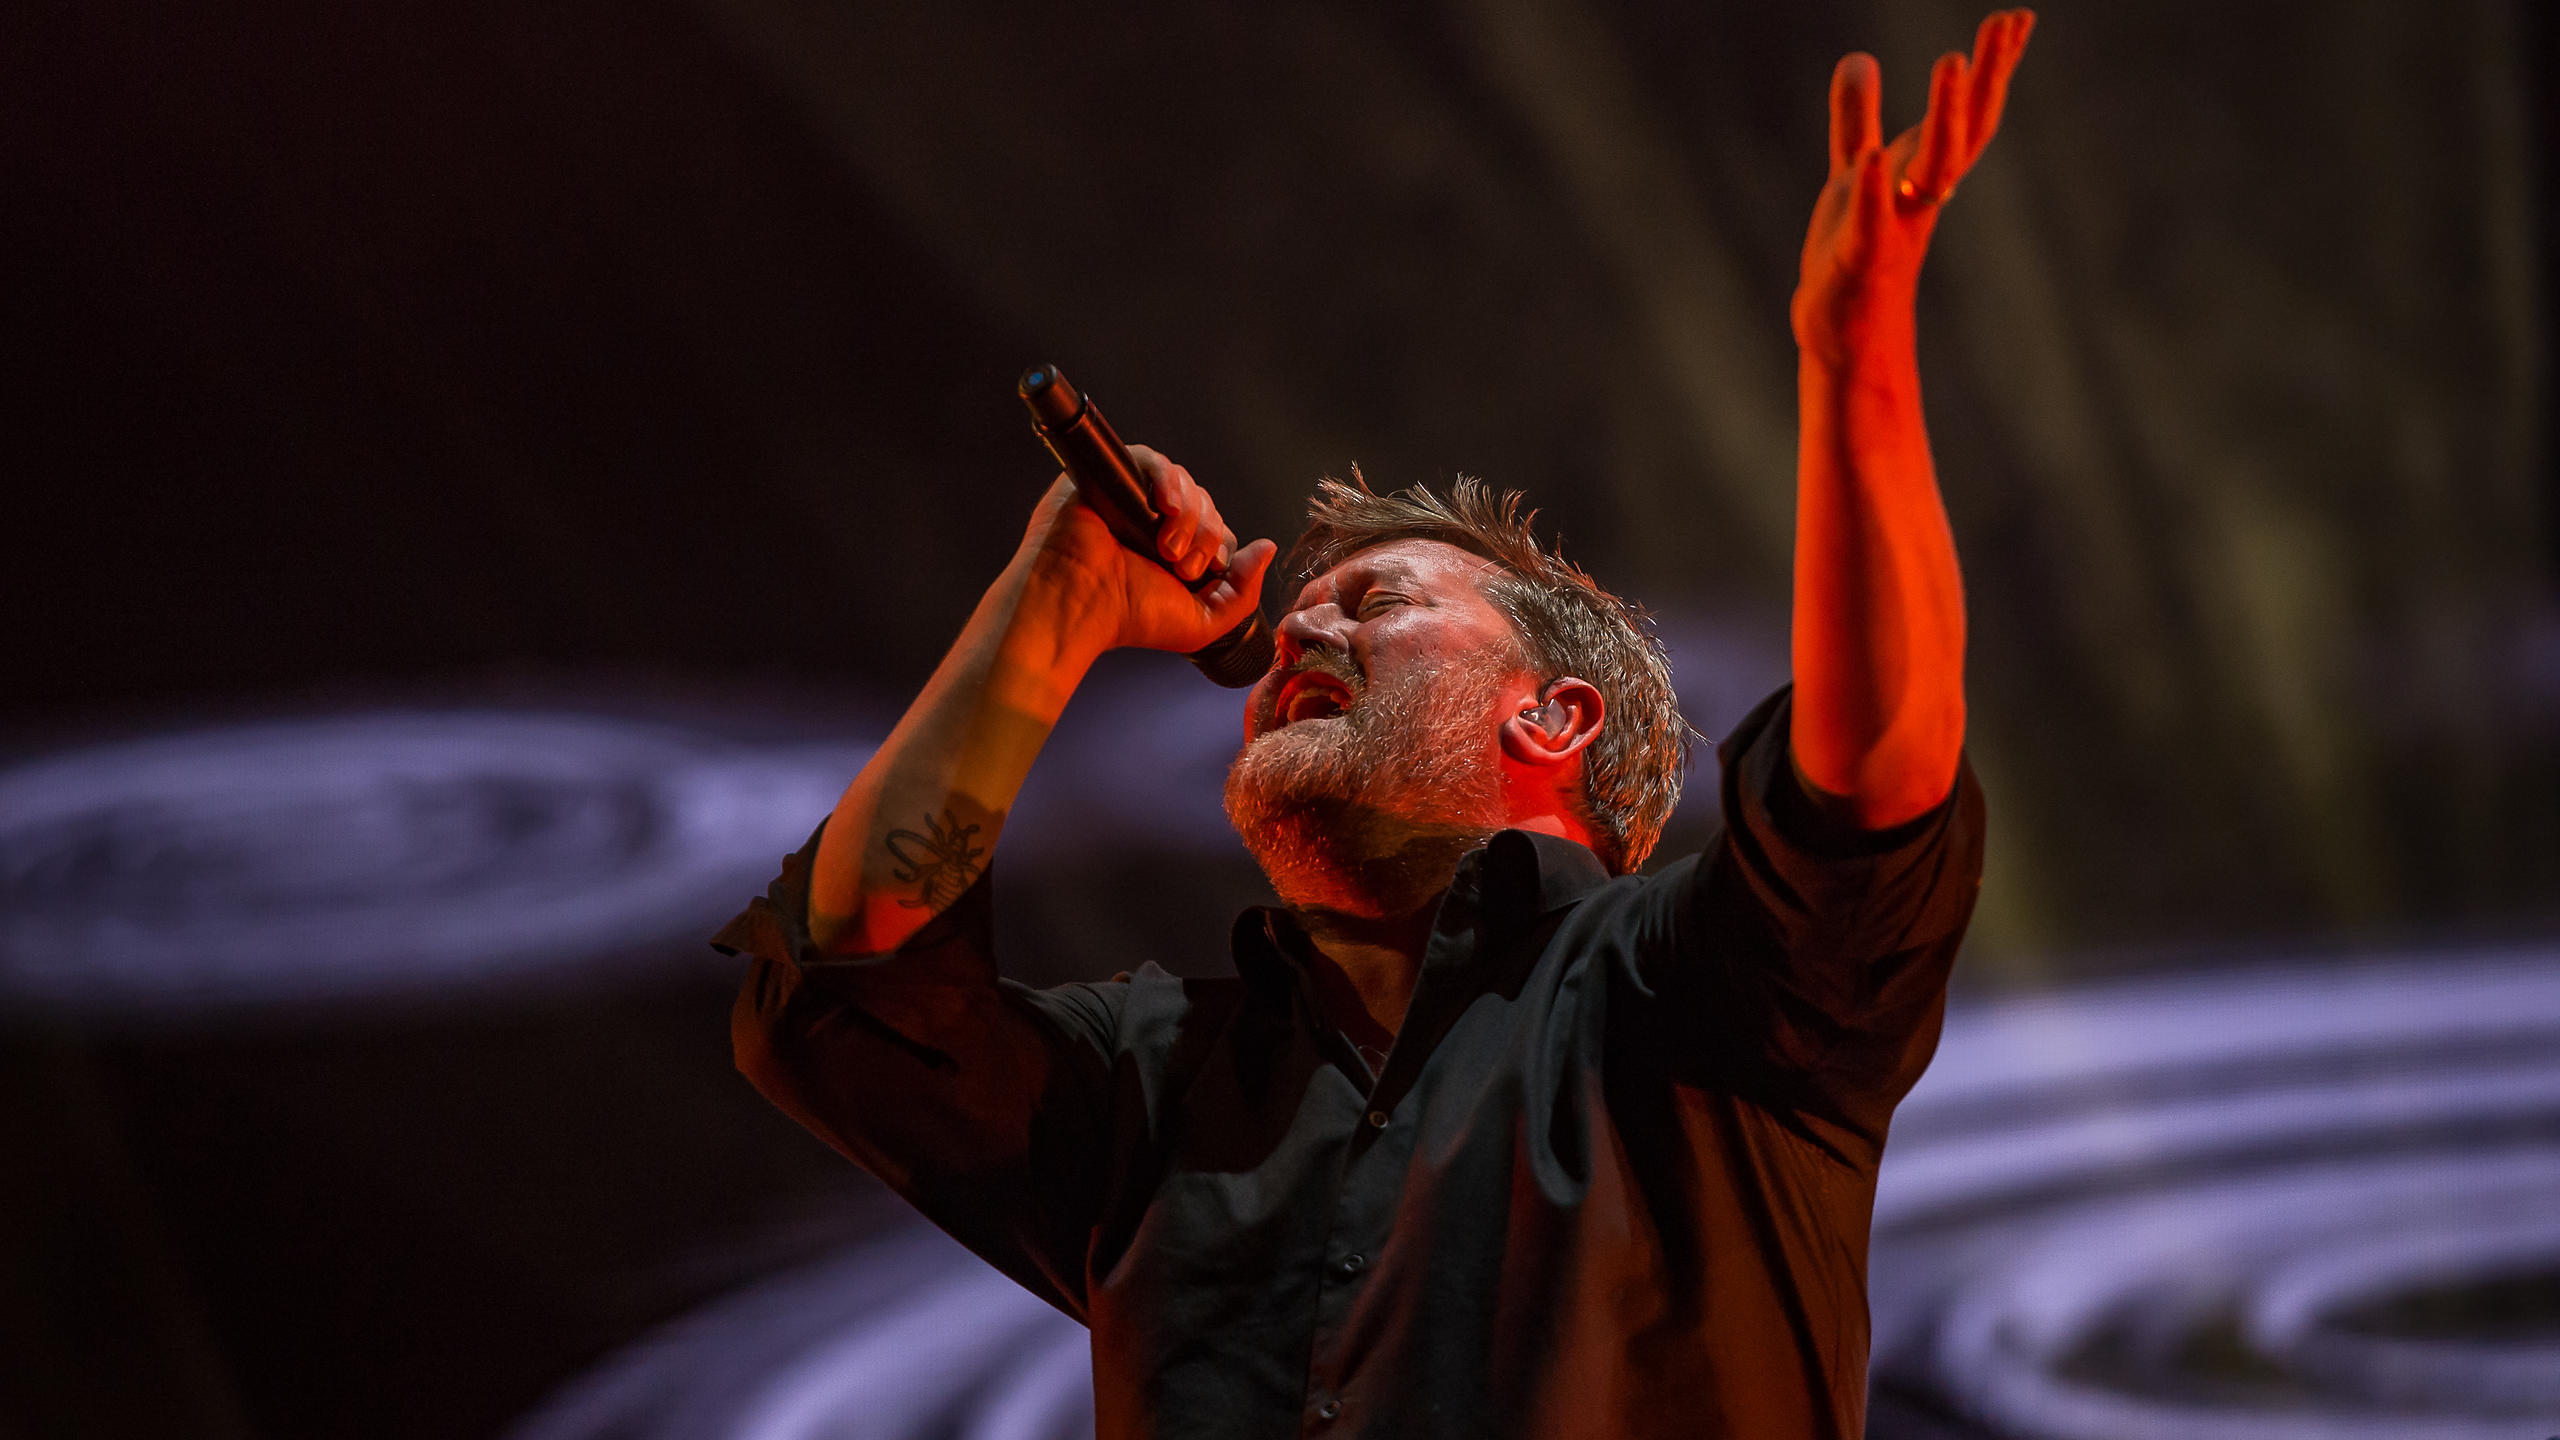 Elbow Headlining the Main Stage and Closing the Victorious Festival 2017